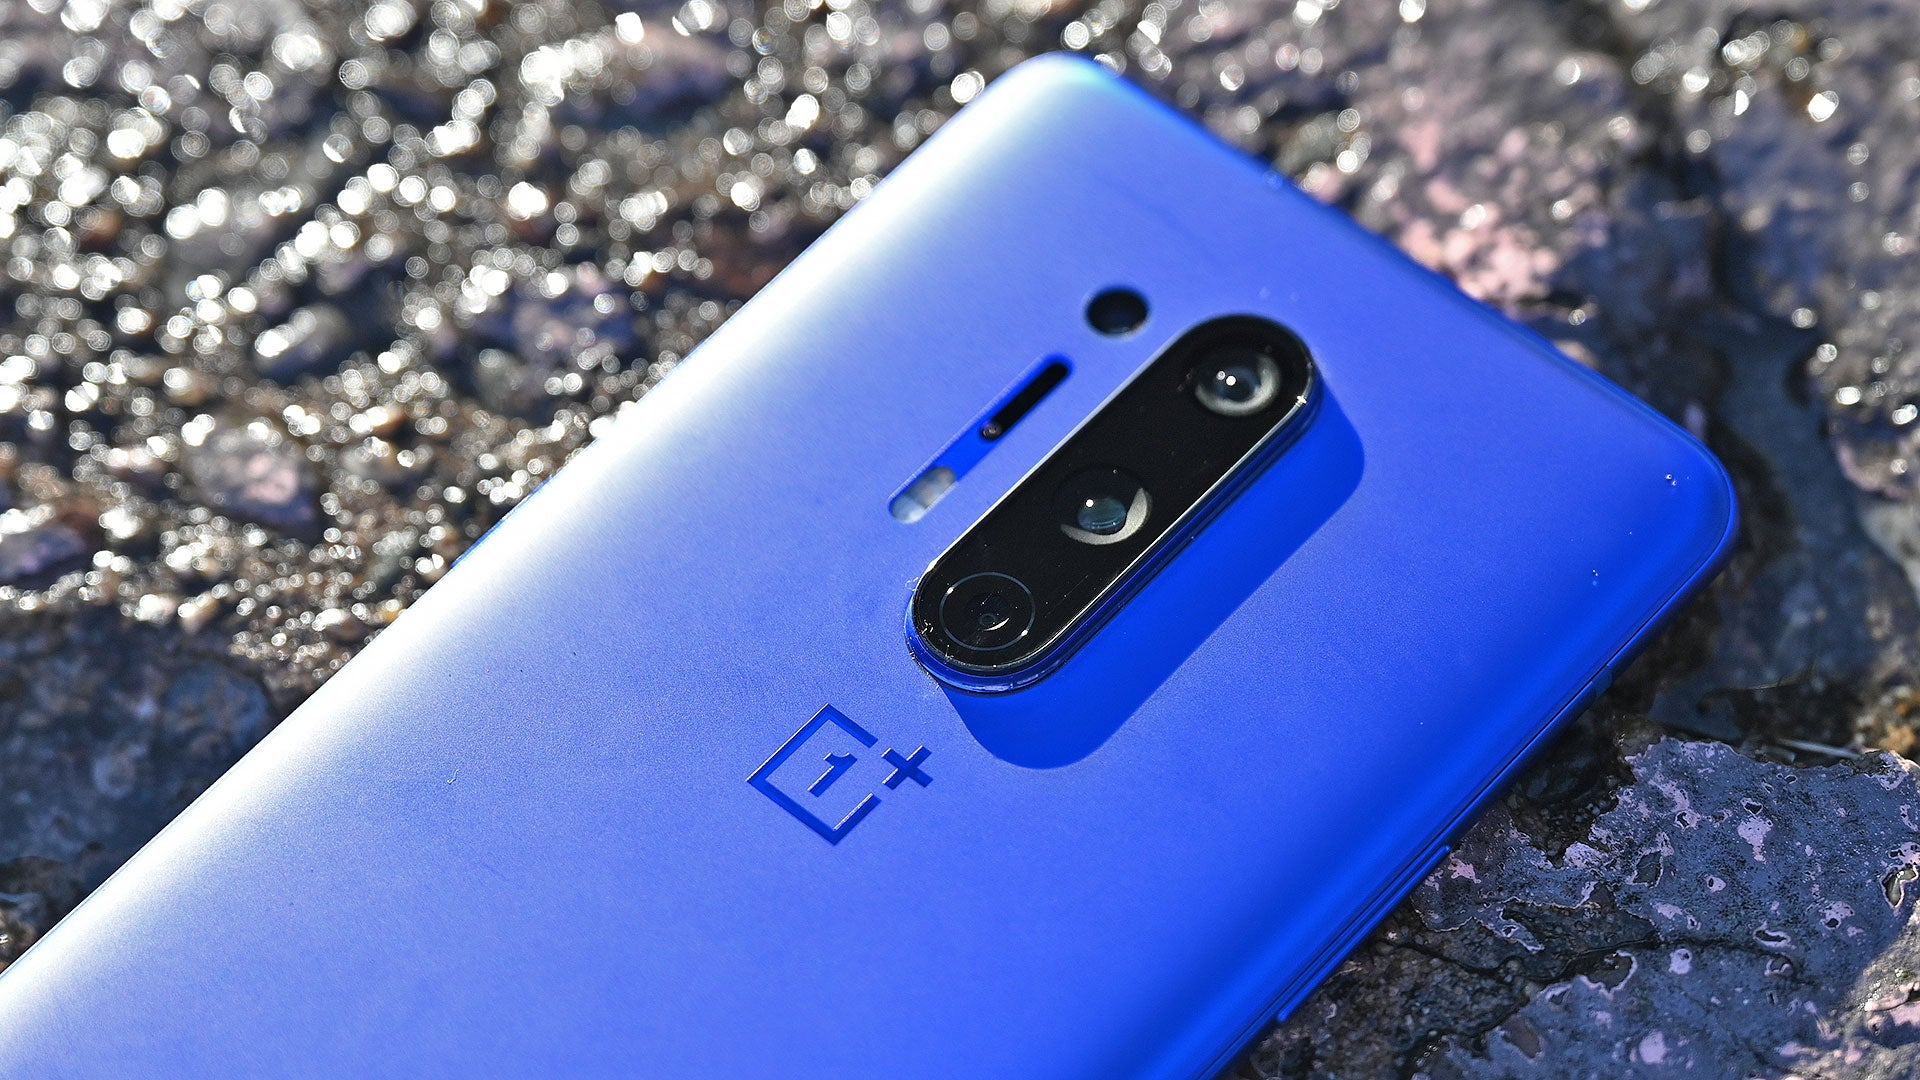 No, The OnePlus 8 Pro Does Not Have X-Ray Vision